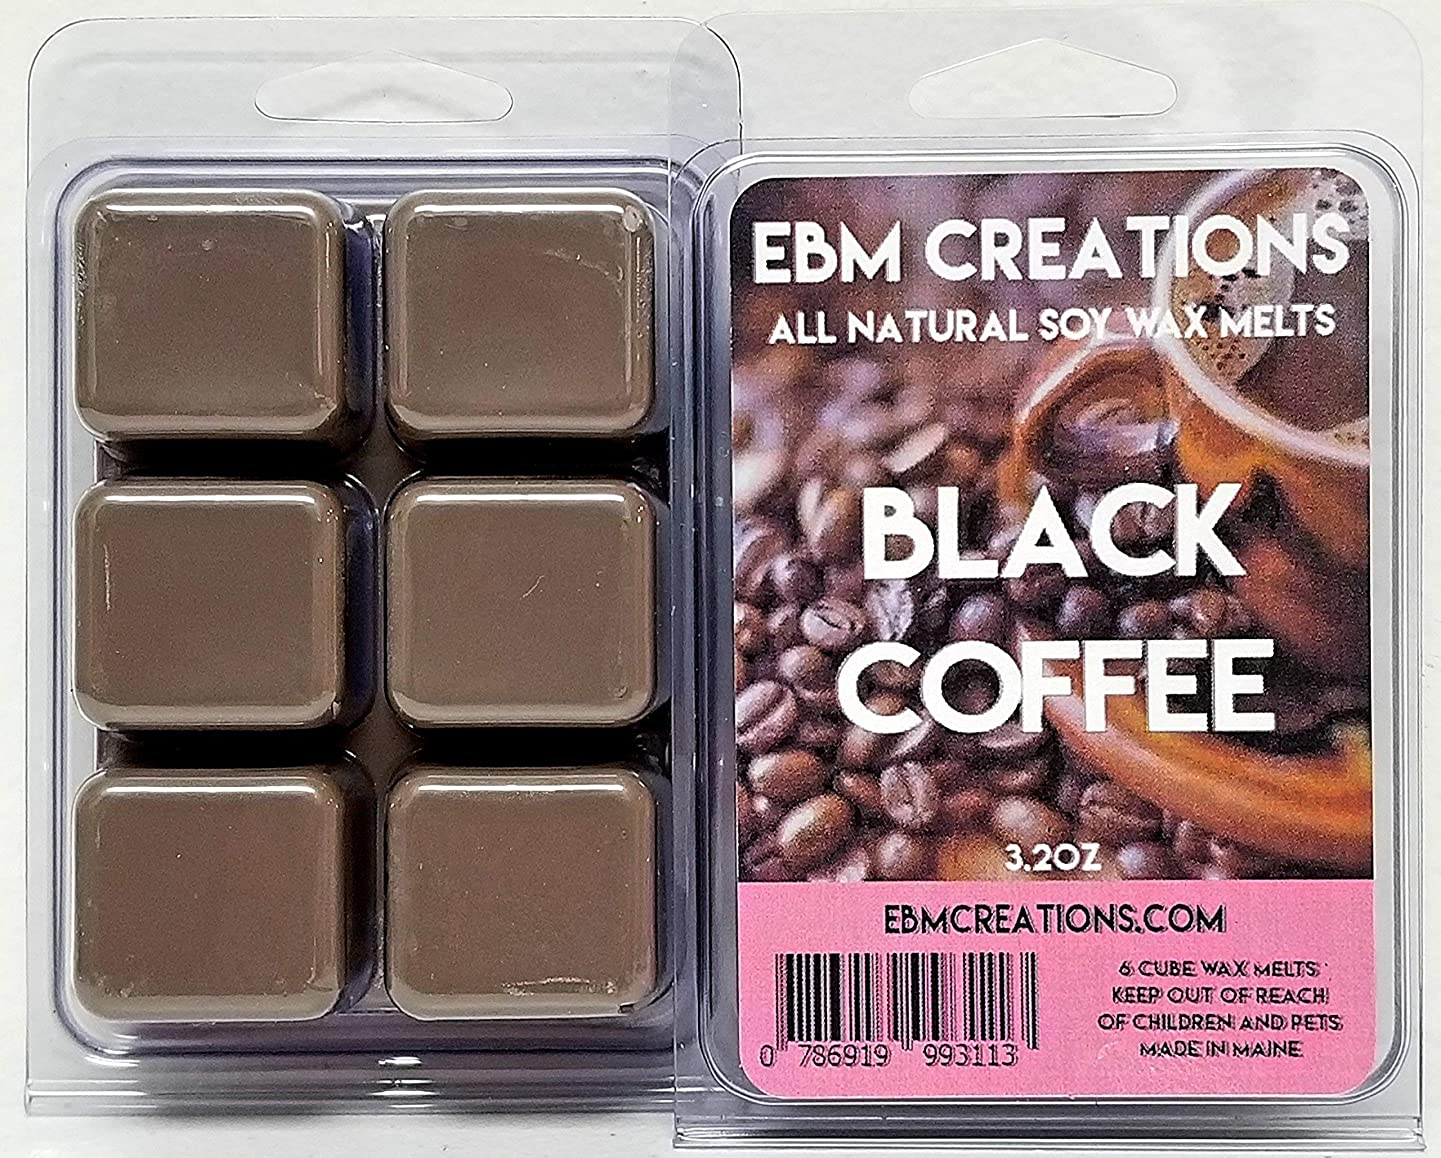 Black Coffee - Scented All Natural Soy Wax Melts - 6 Cube Clamshell 3.2oz Highly Scented!